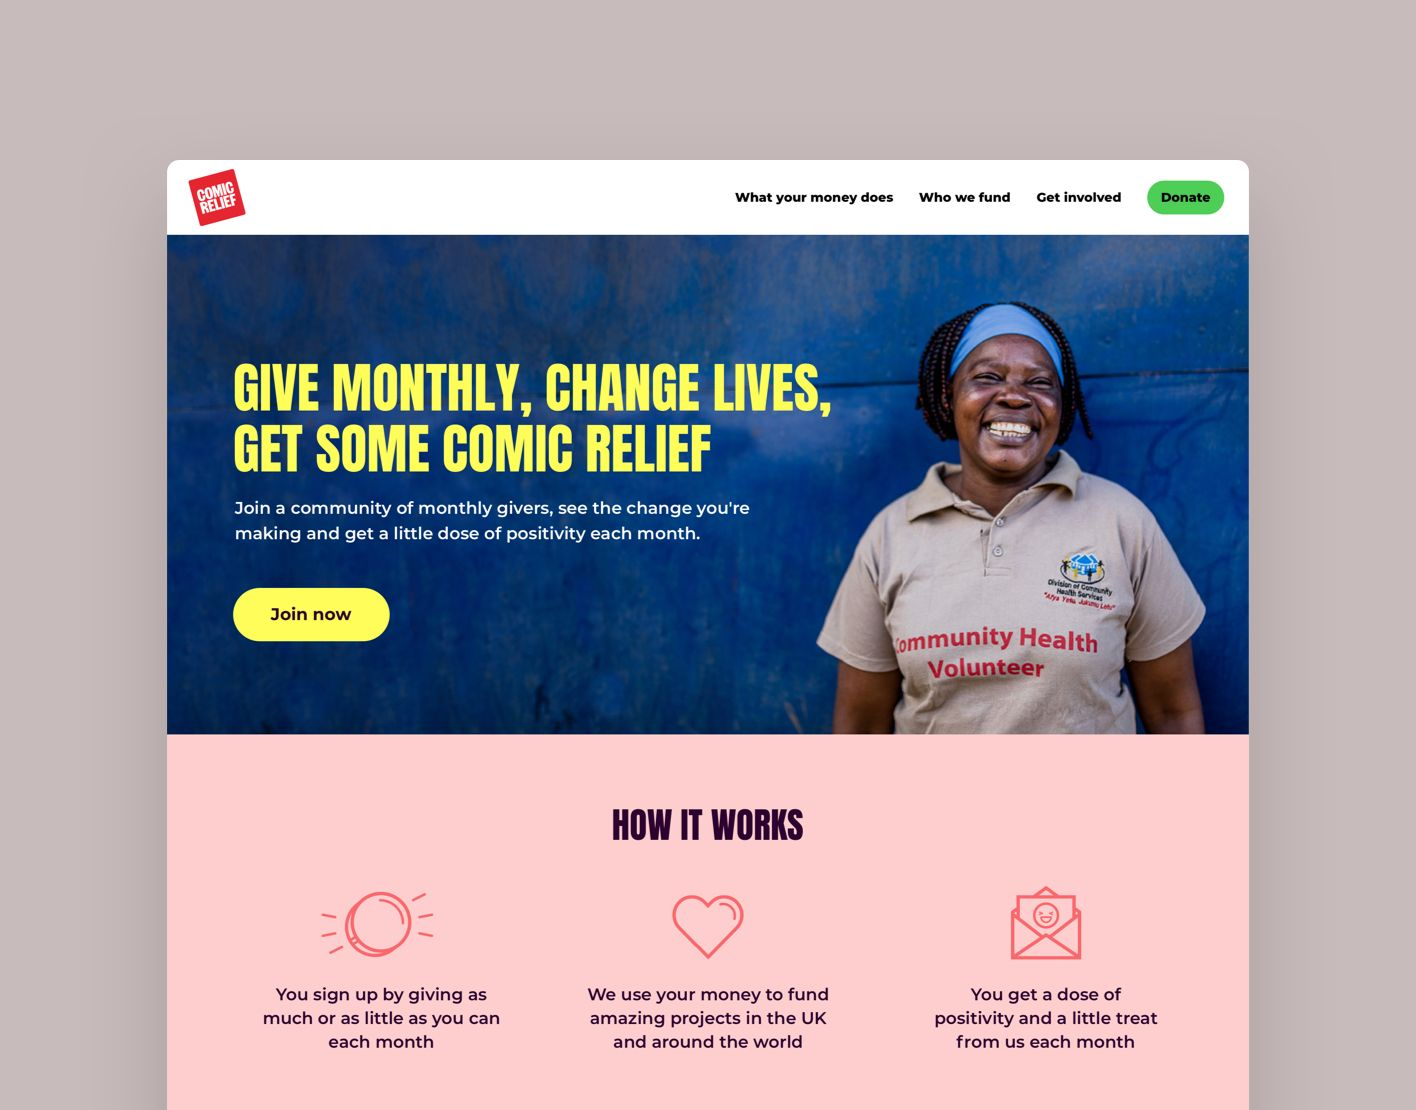 A landing page for a new community of monthly givers.